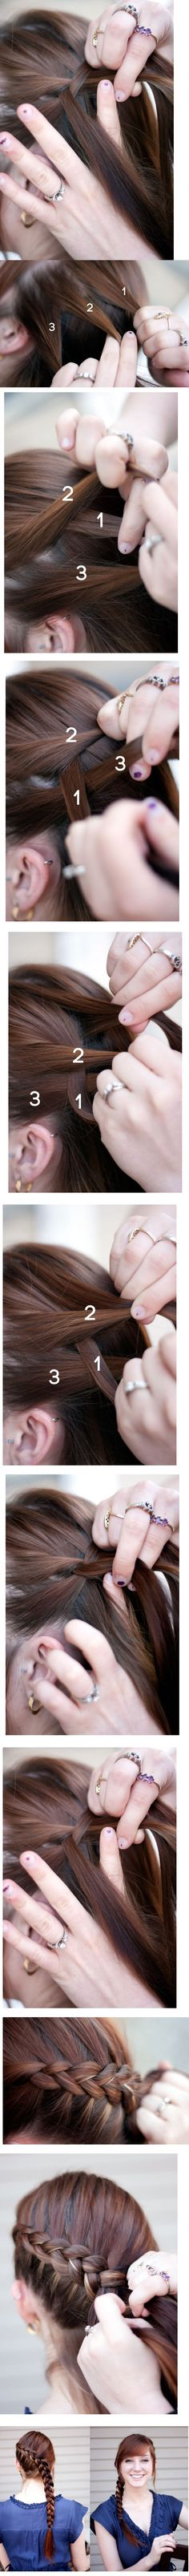 Step by step (if I have long hair)